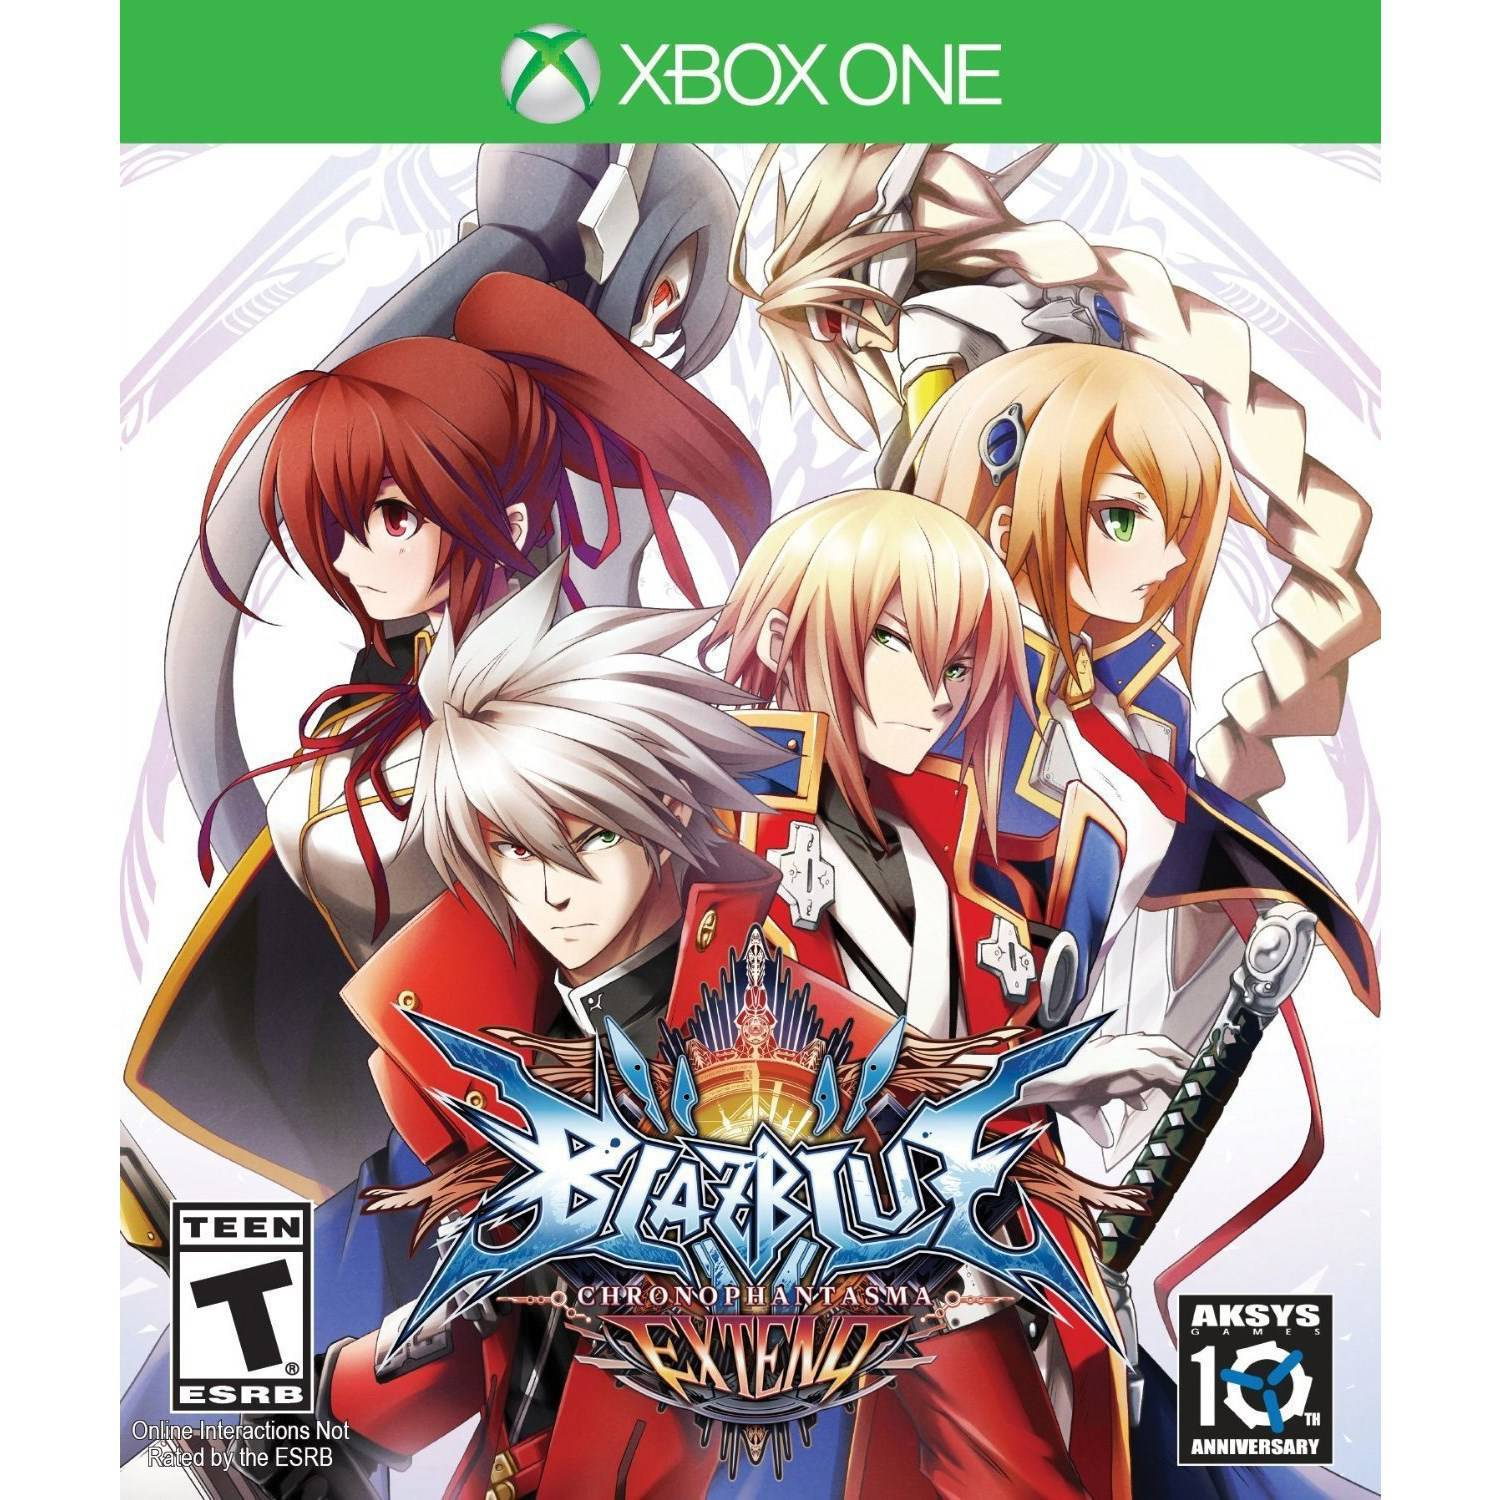 Blazblue Chrono Phantasma (Xbox One) - Pre-Owned